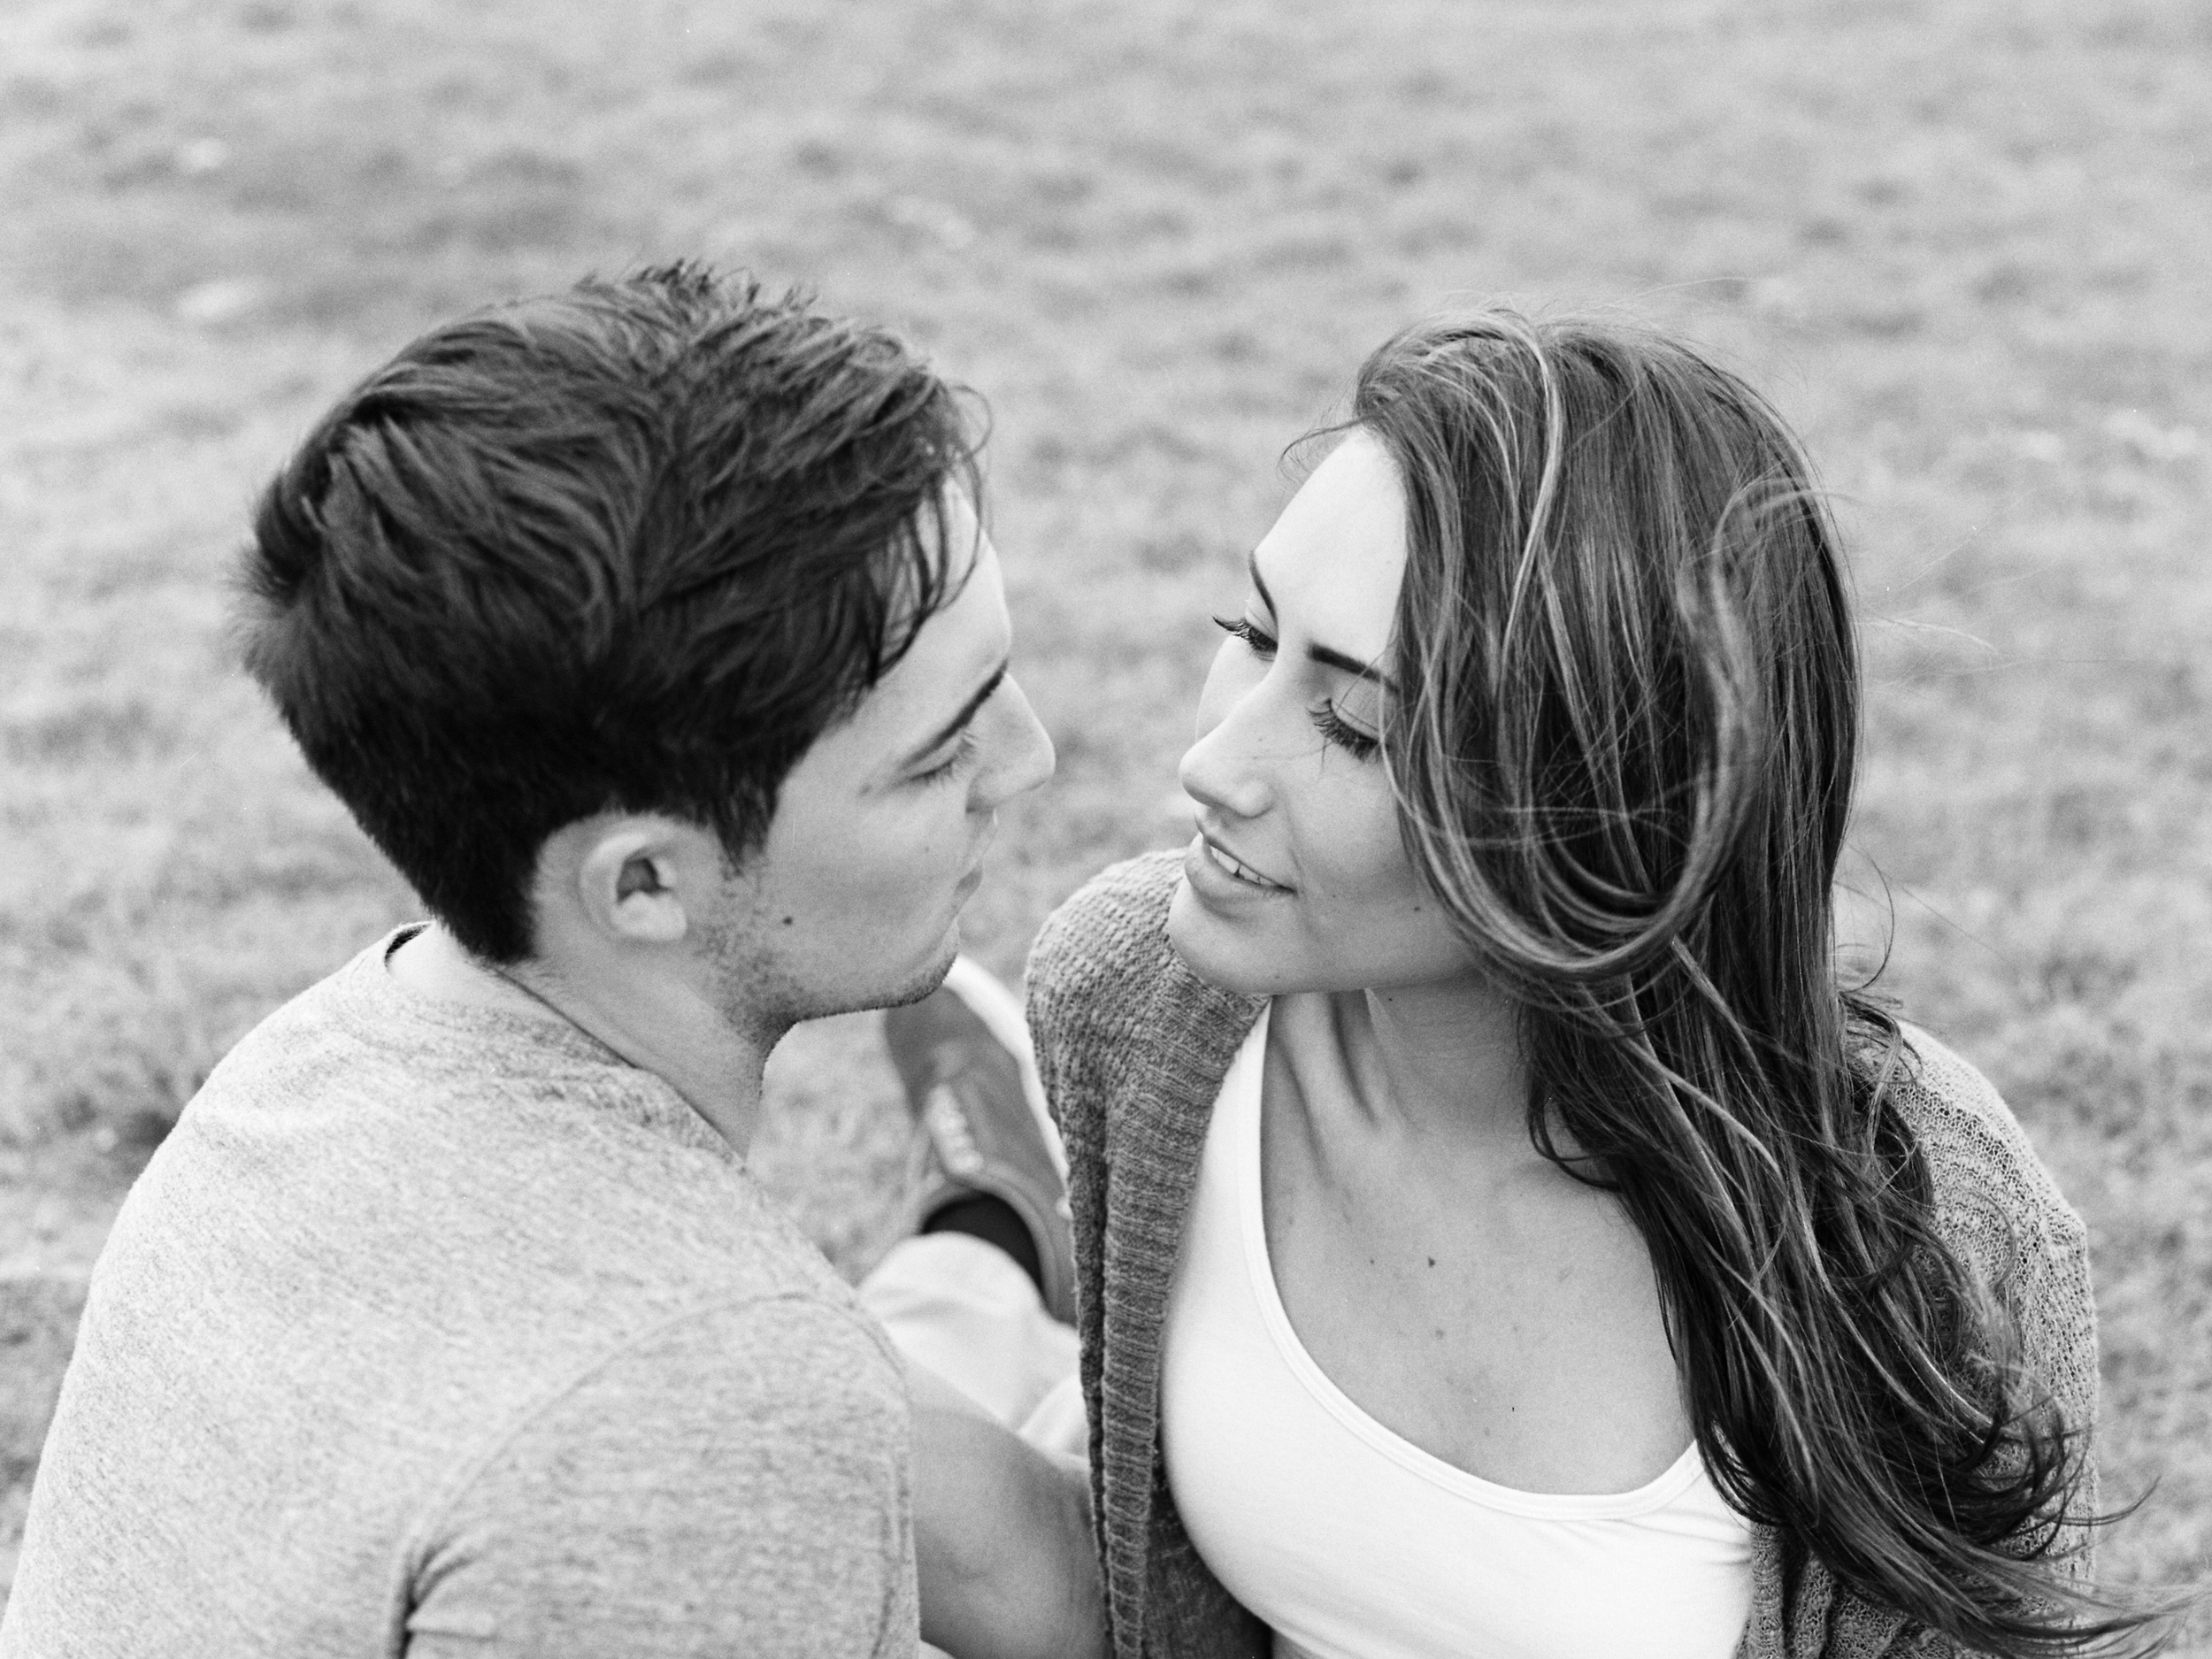 couples-kiss-photography-session-clovis-new-mexico